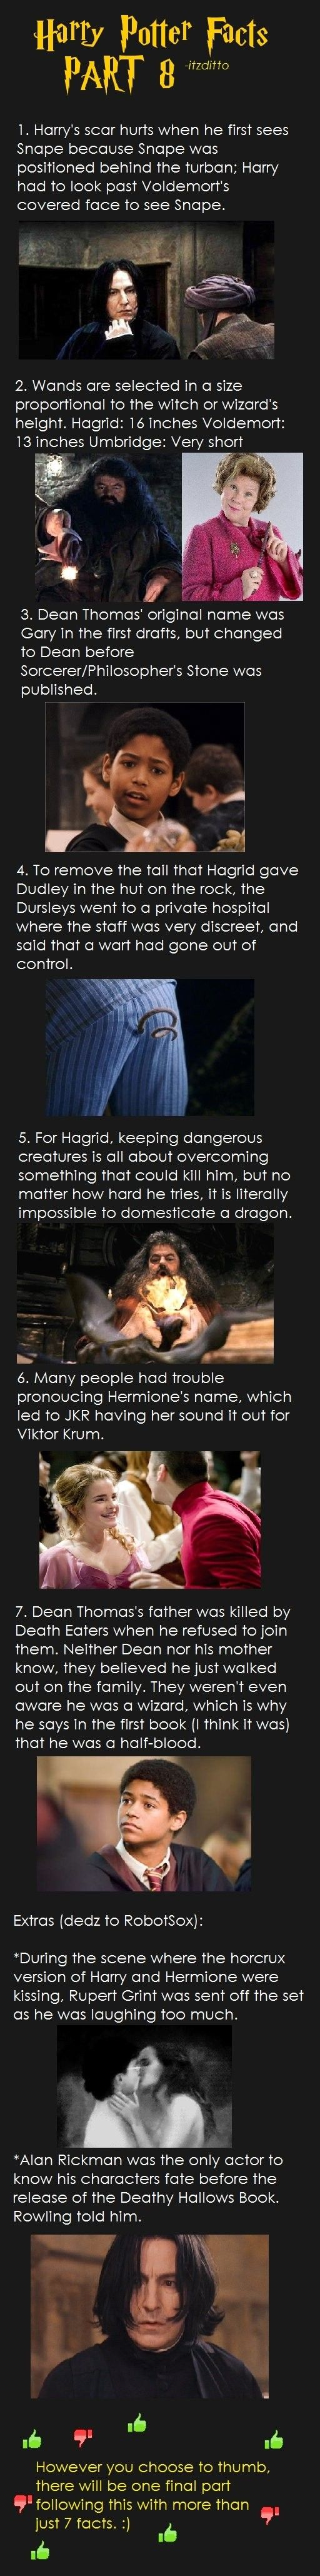 Harry Potter - Fact 8 Well for the part where they were kissing I would have laughed myself sick too :)